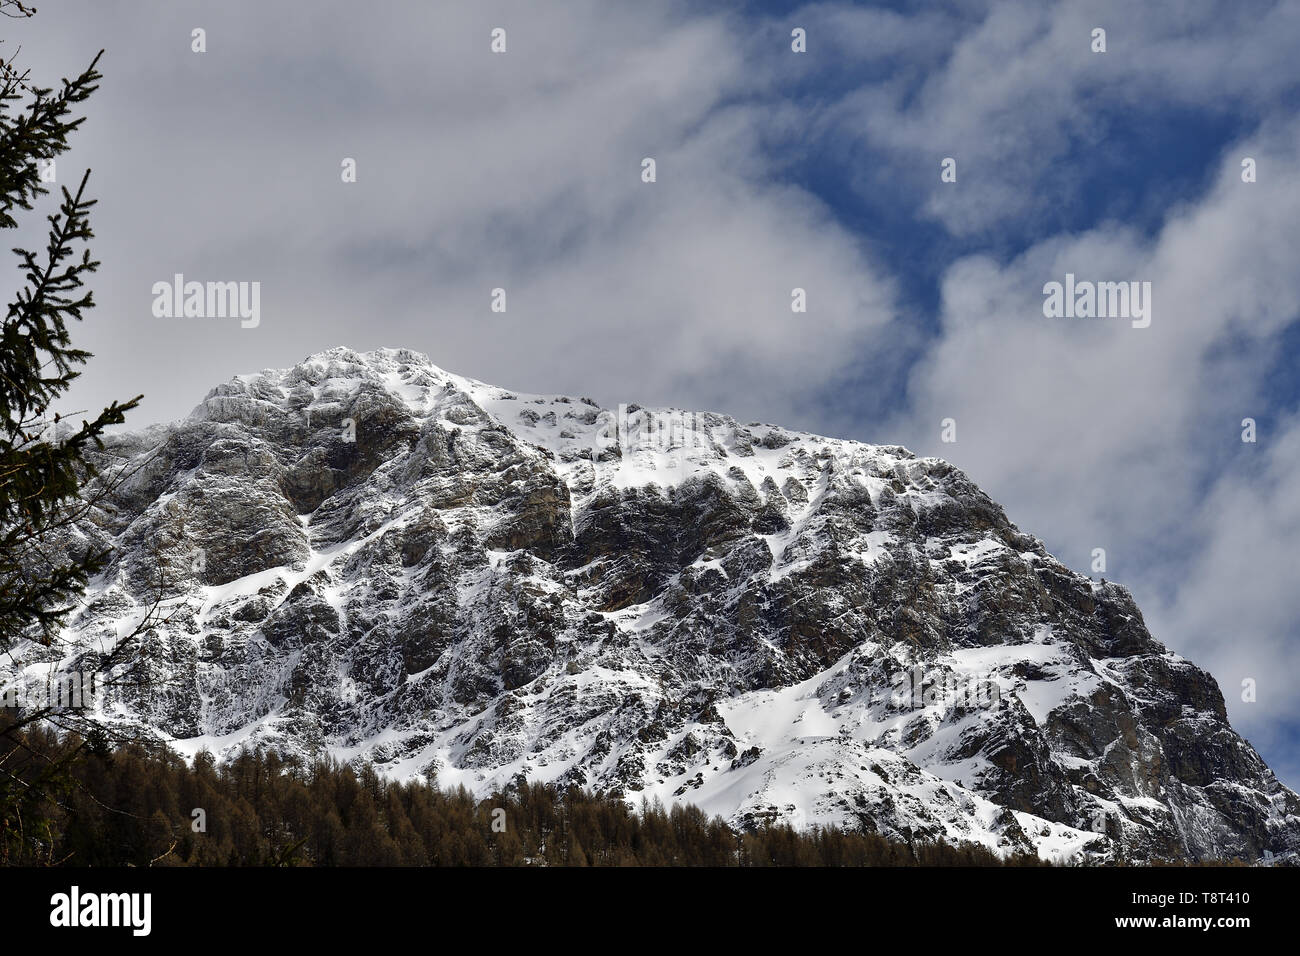 Larch and pine trees are frame to the mountain called Monte dell'Oro in Malenco Valley - Stock Image